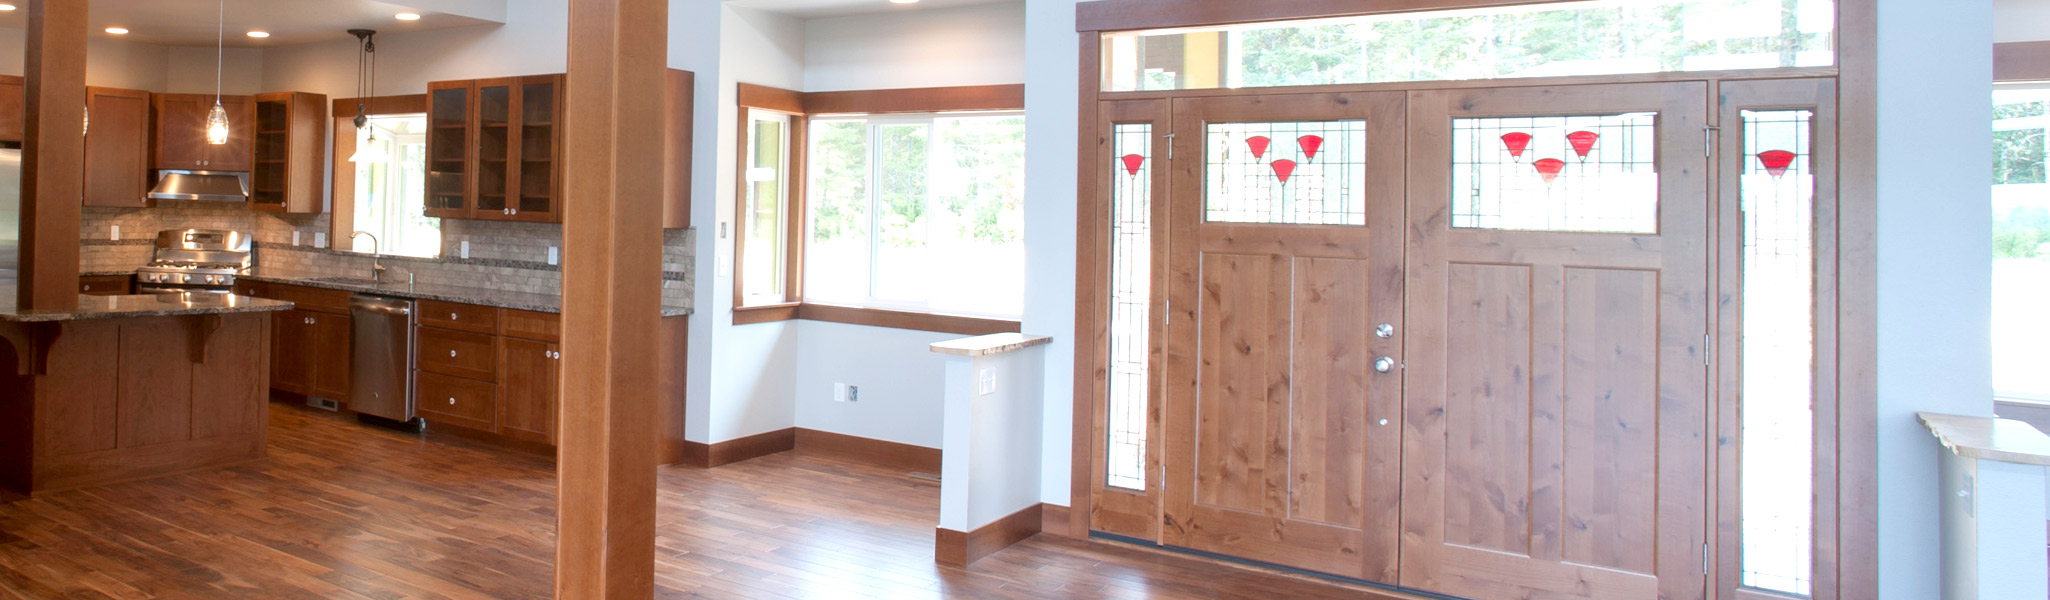 Olympic Mountain Millwork Doors